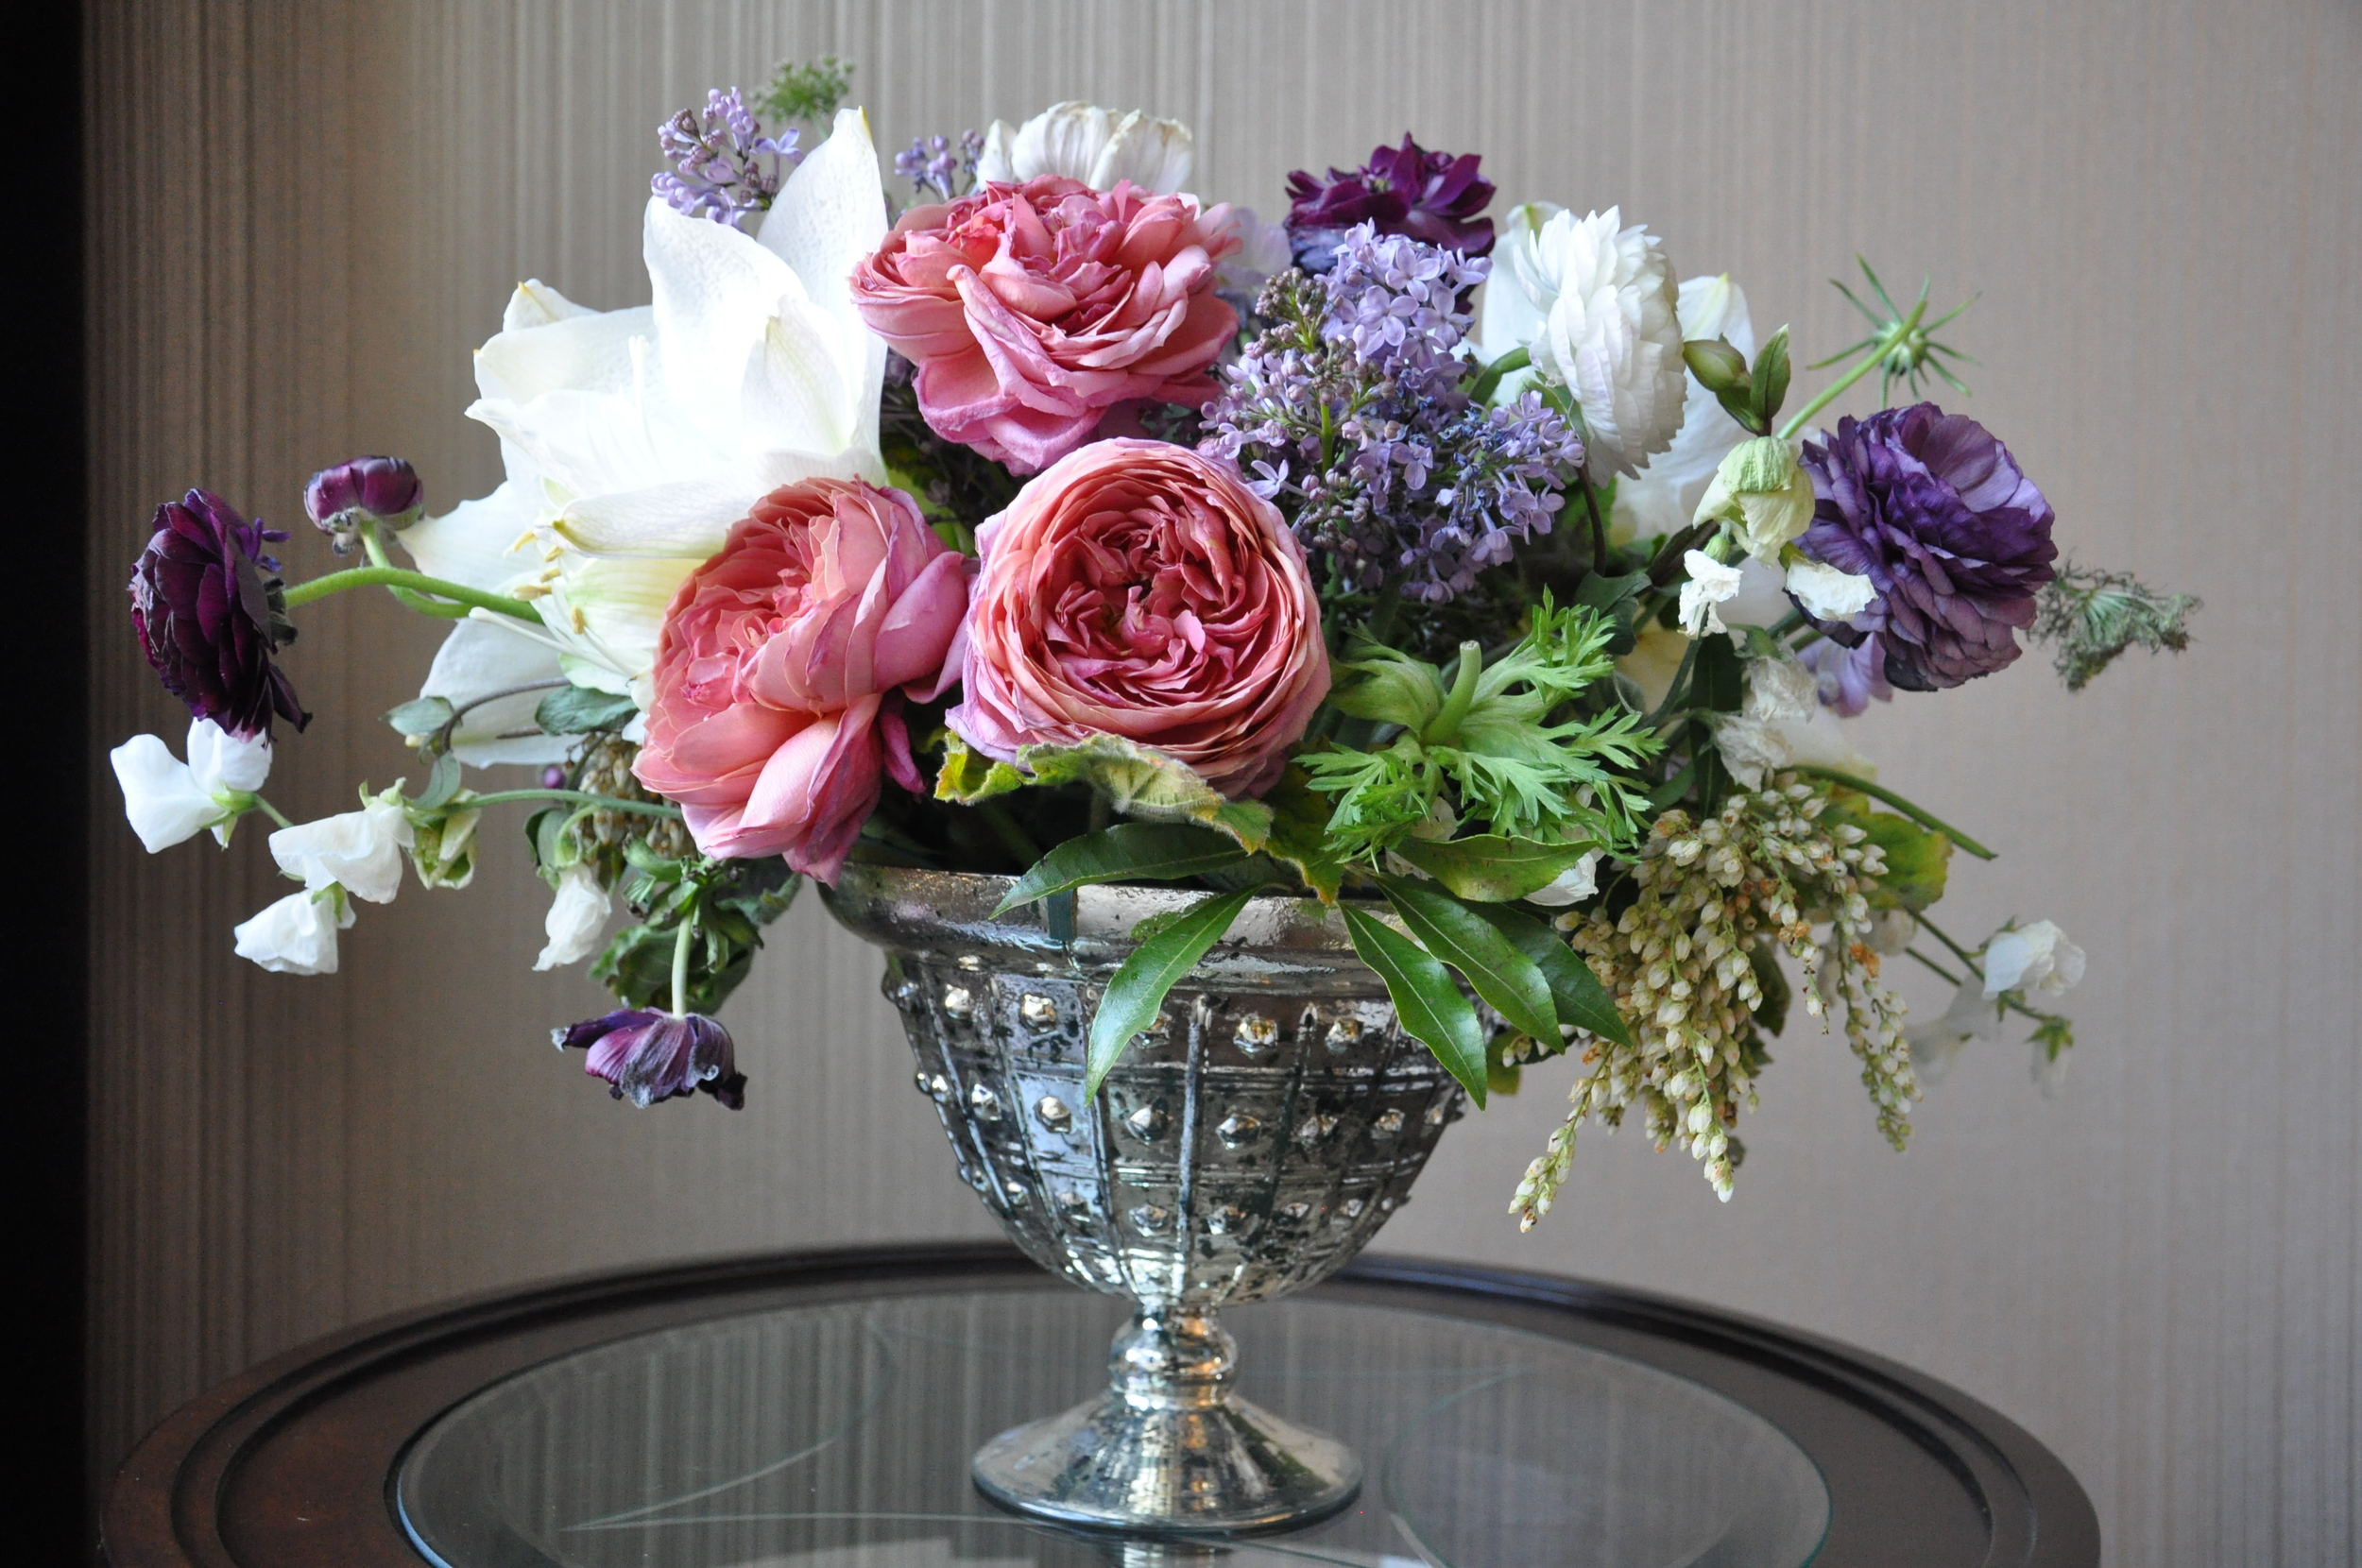 These arrangements left over from the bridal shower are currently all over my house and I couldn't be happier about it.